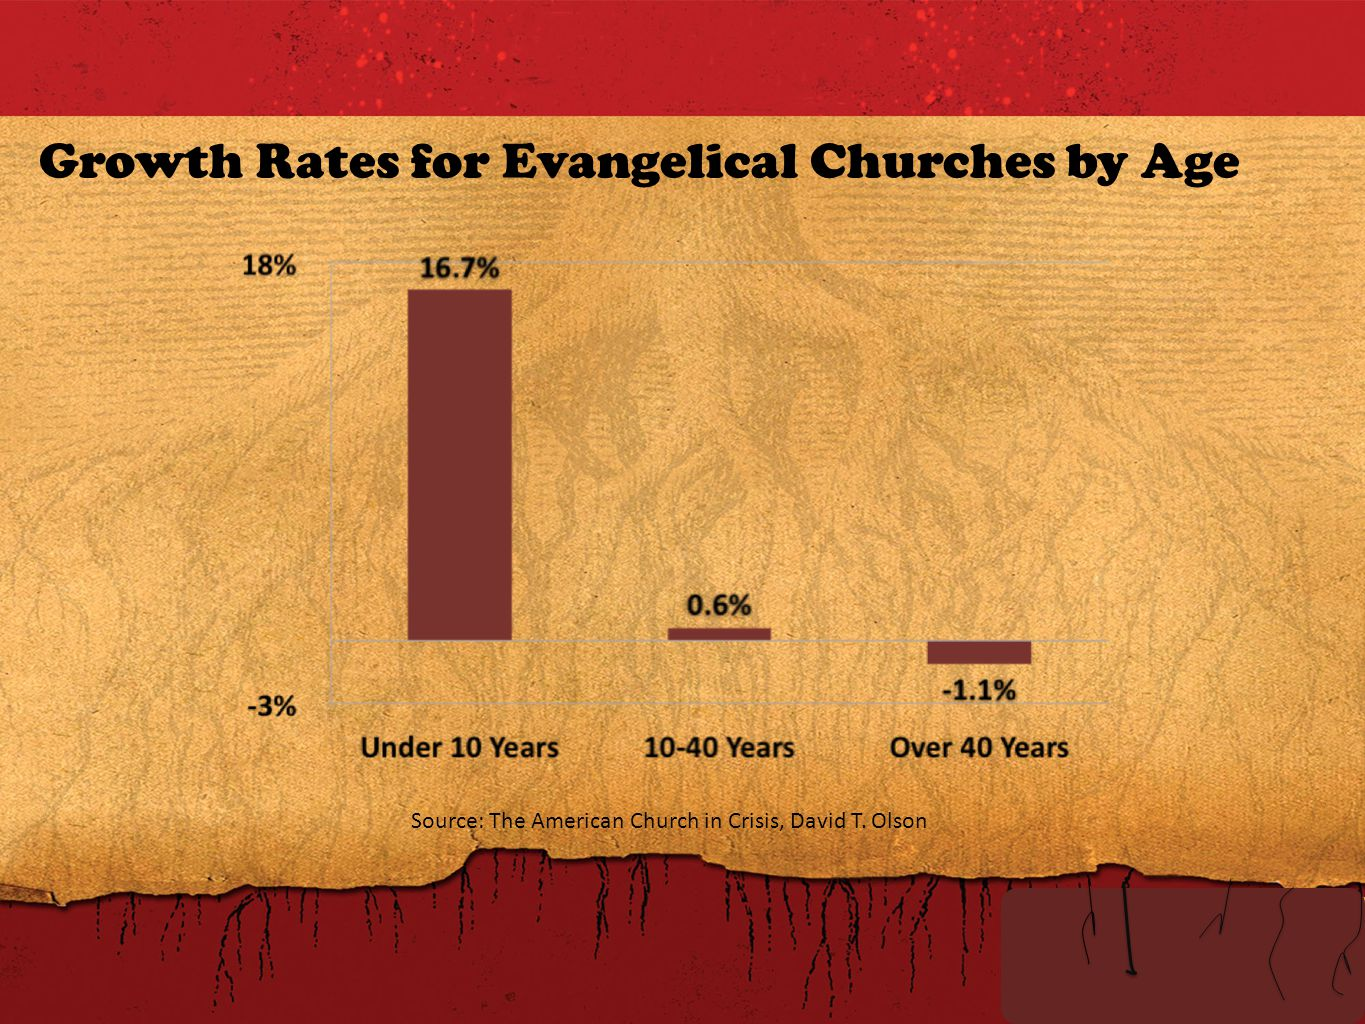 Growth Rates for Evangelical Churches by Age Source: The American Church in Crisis, David T. Olson